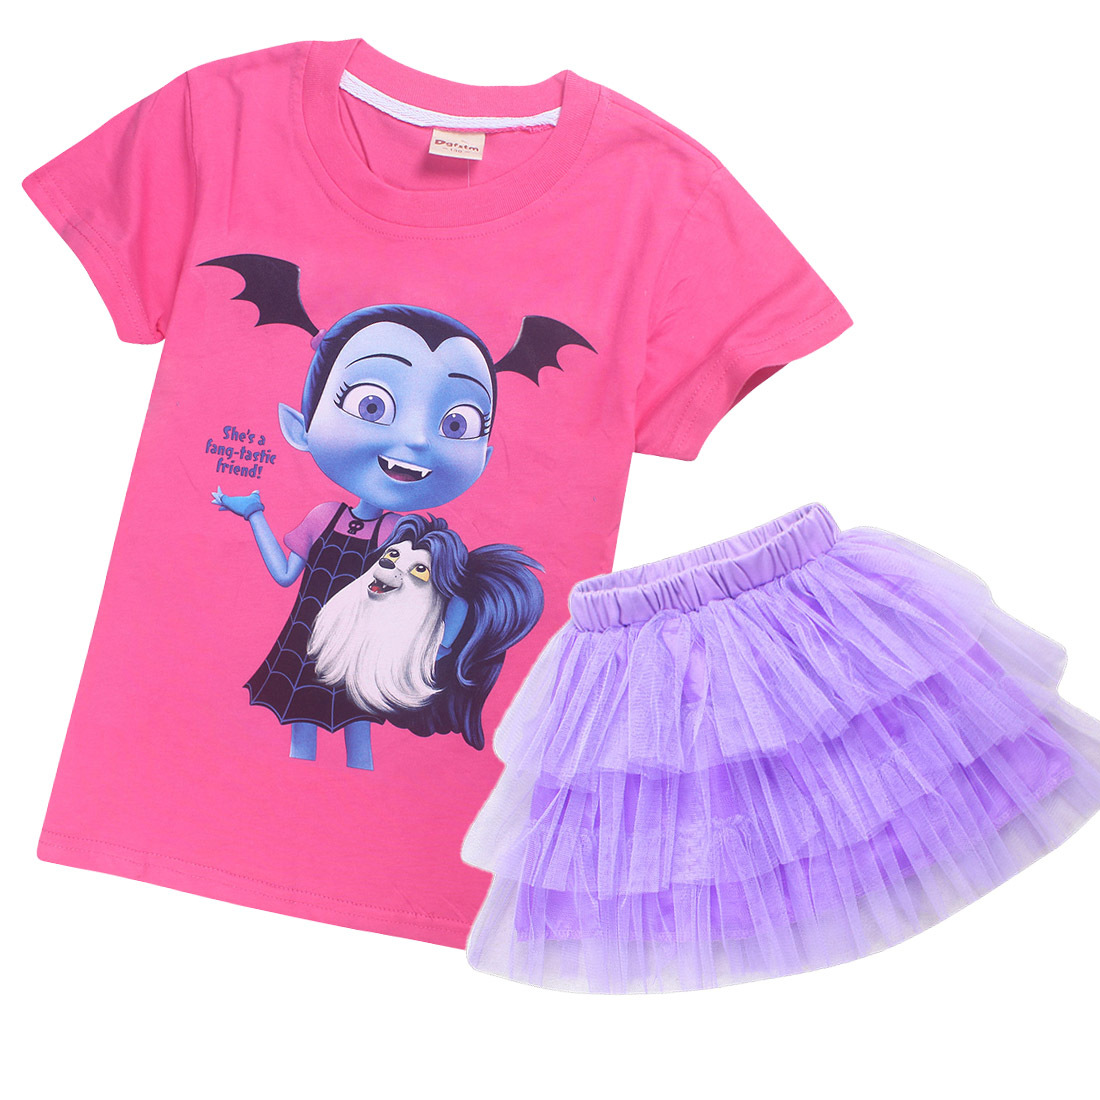 Girls Vampirina Princess Party Dress Tutu Skirt+T-Shirt Summer casual 2pcs set